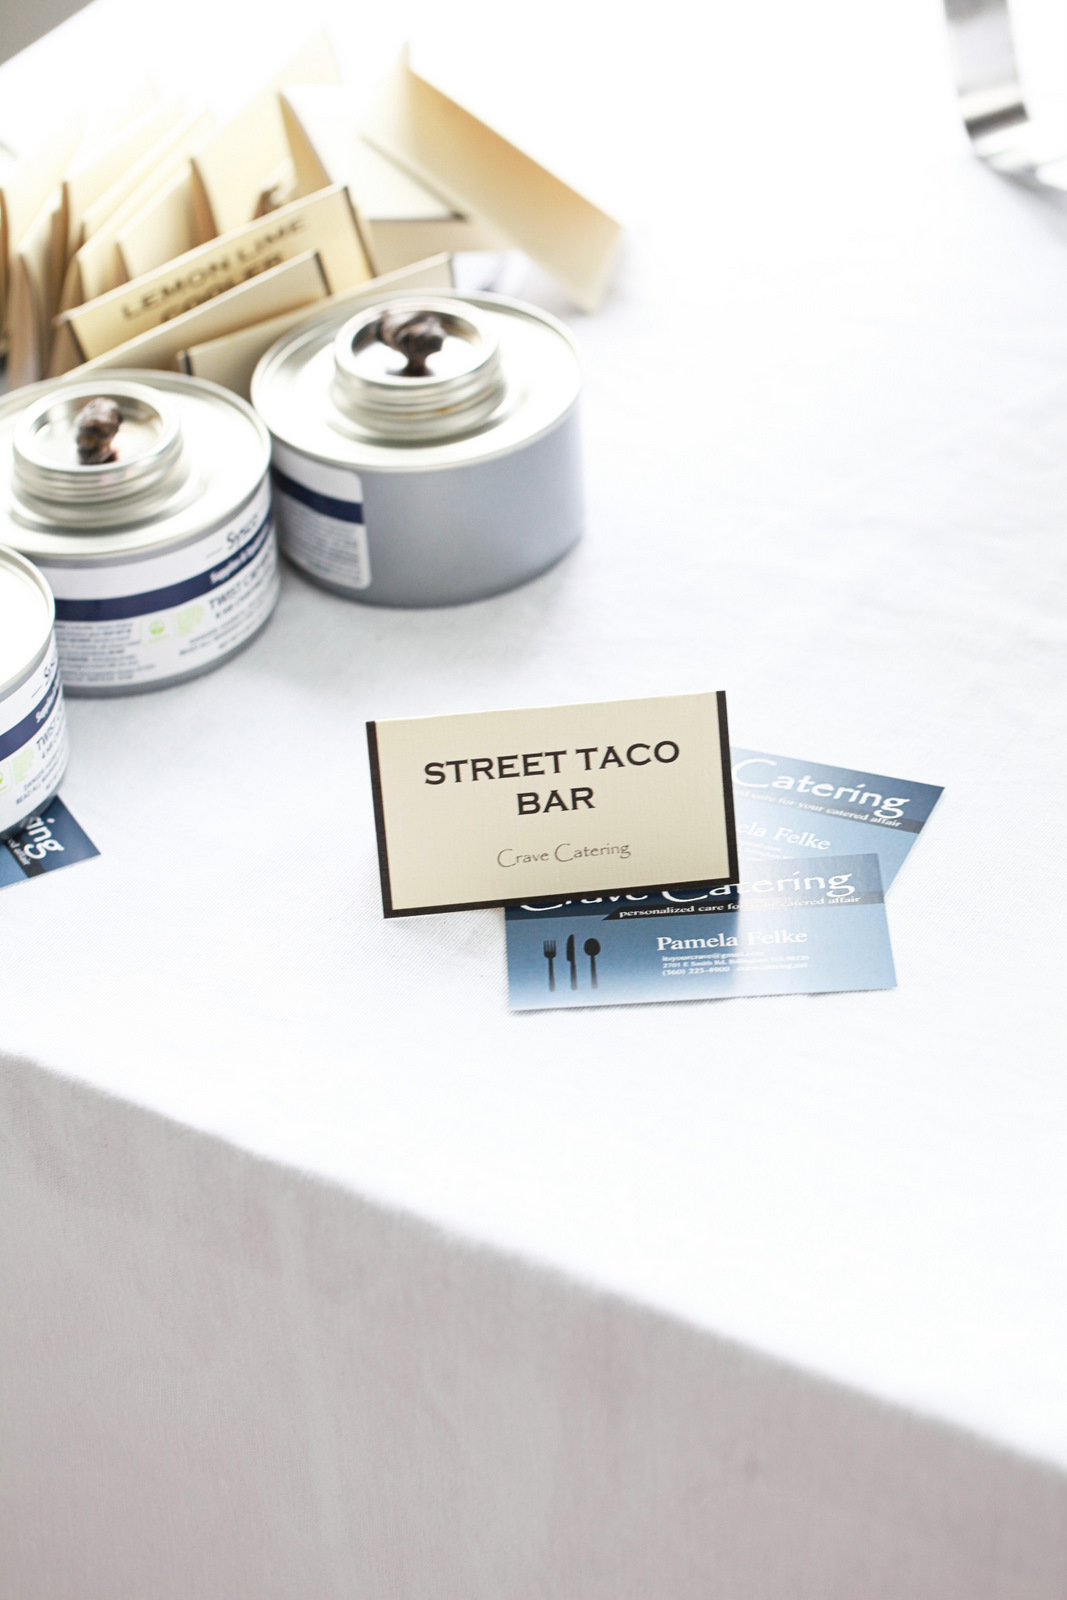 Crave Catering, Street Tacos, Party